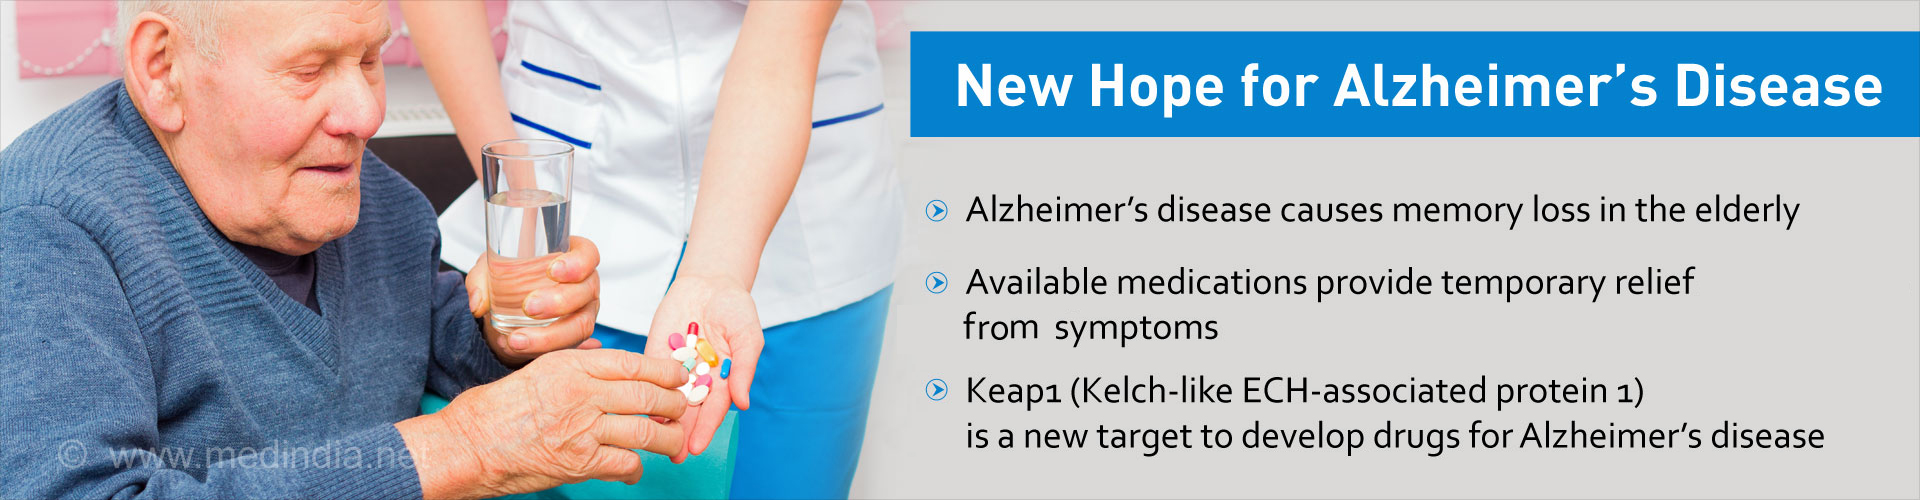 Potential New Target for Alzheimer�s Disease Treatment